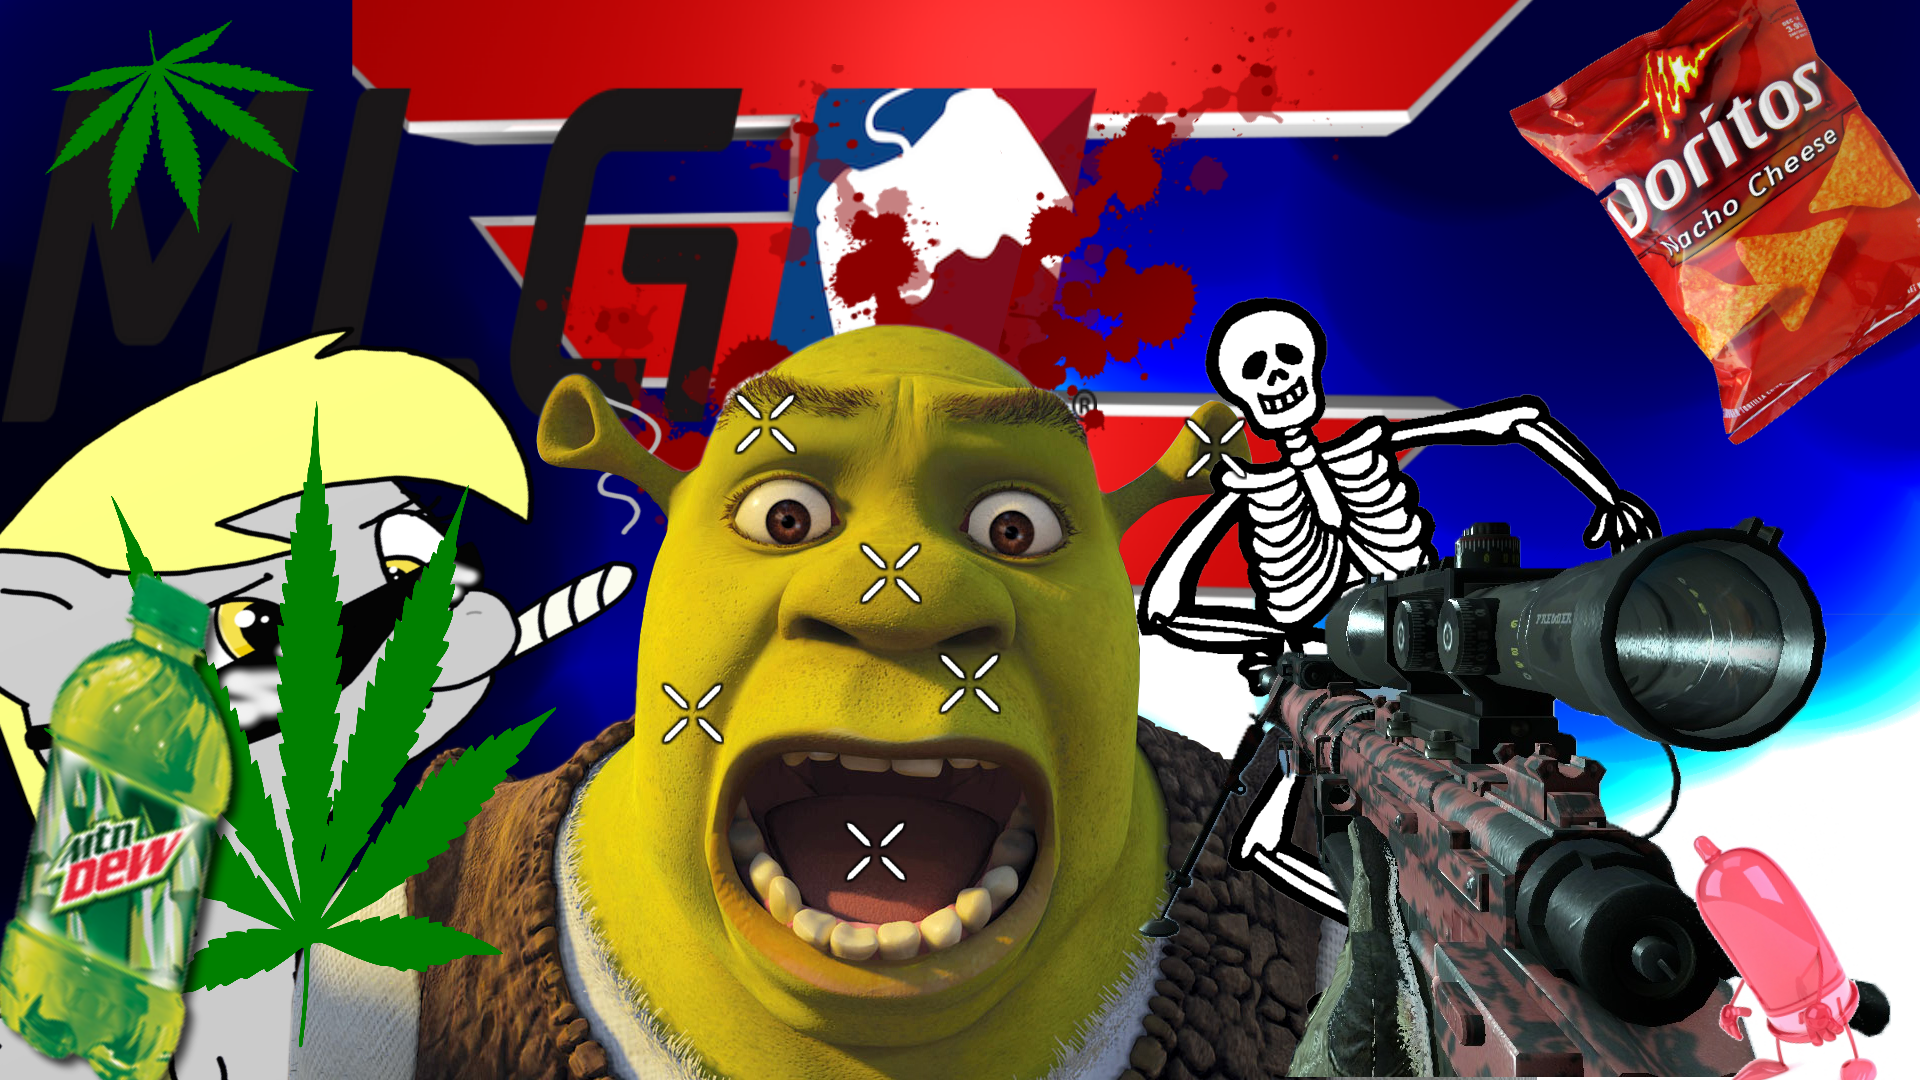 mlg 1920 x 1080 wallpaper by blueaseer watch customization wallpaper 1920x1080